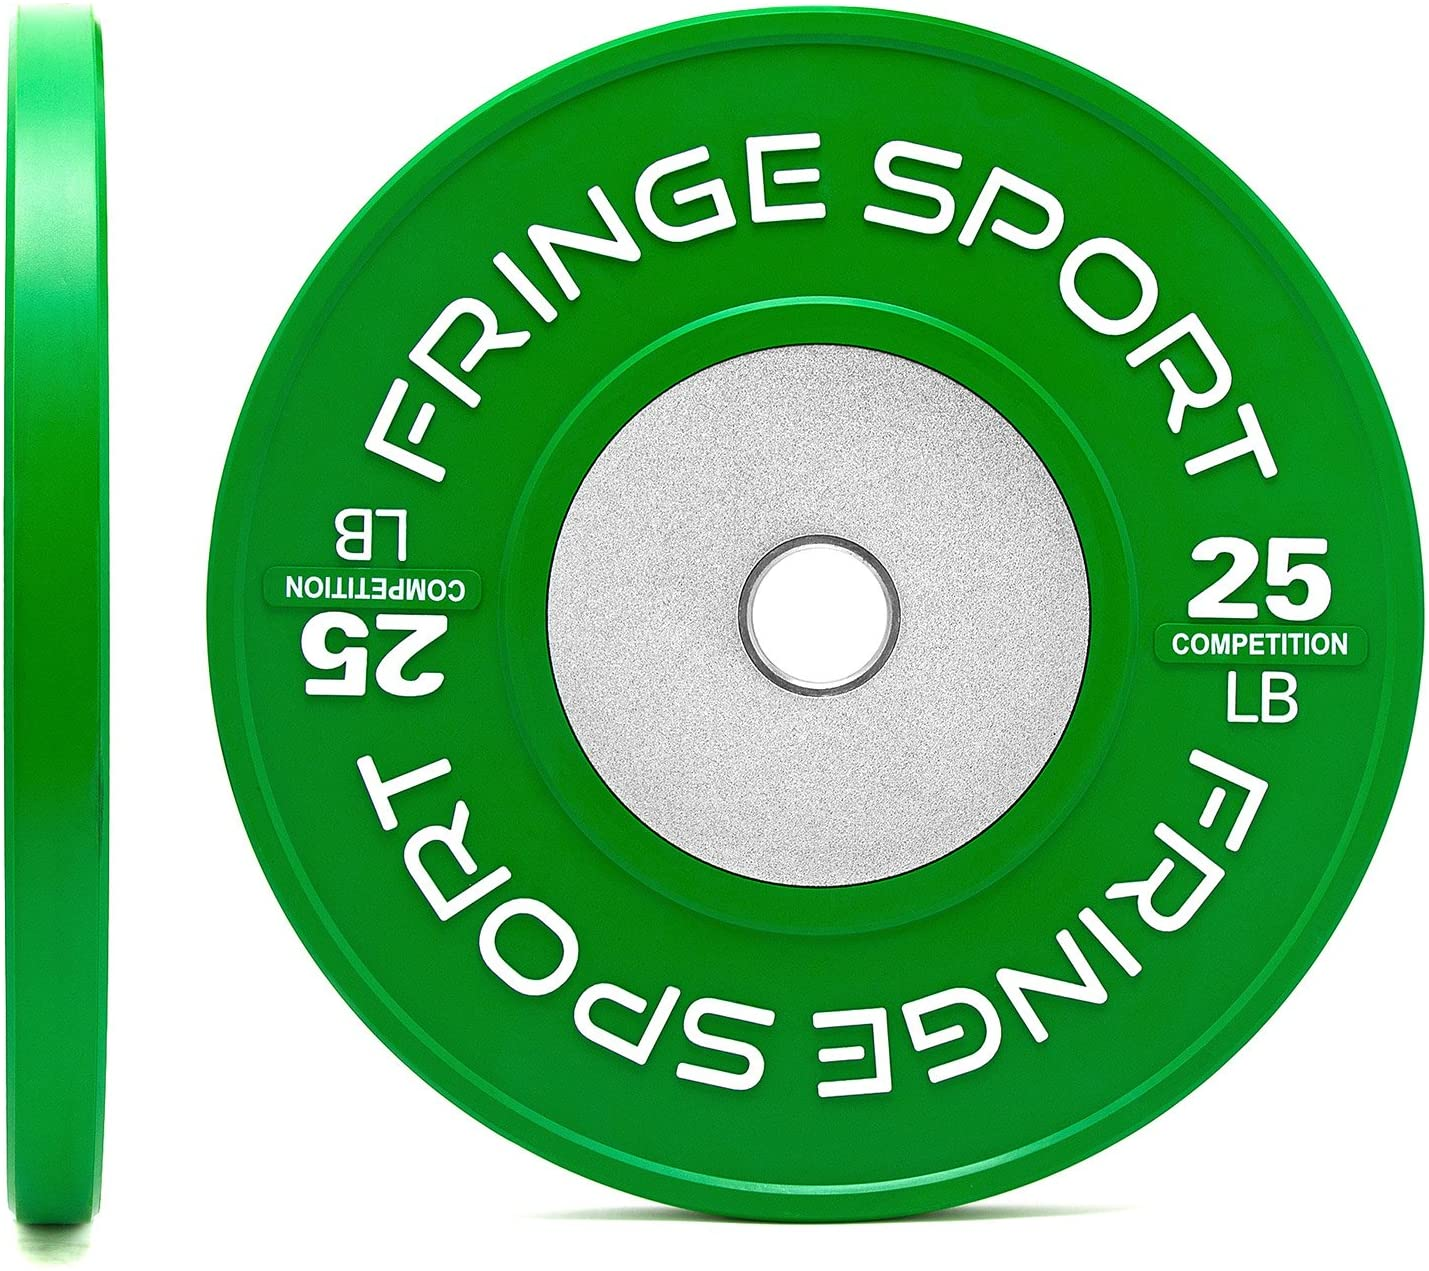 Fringe Sport Color Competition Bumper Plate Pairs in Pounds for Olympic...